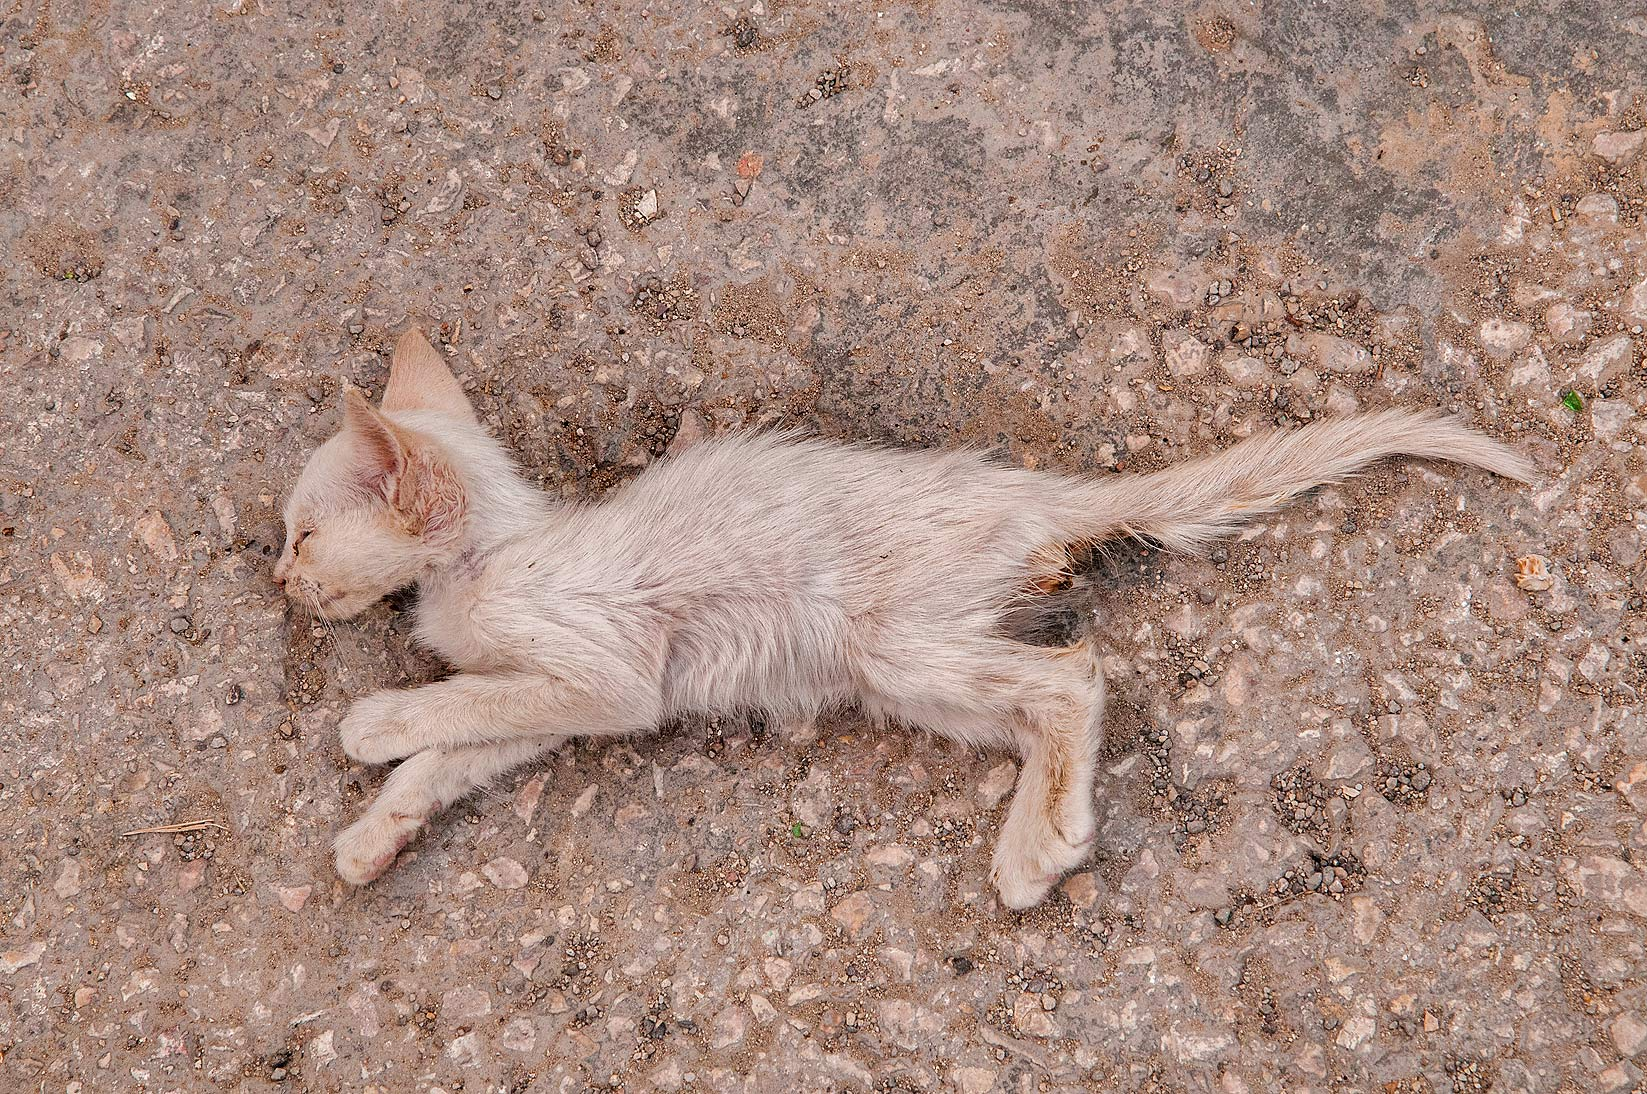 Mummy of a kitten dried in heat on Umm Wishah St. in Musheirib area. Doha, Qatar